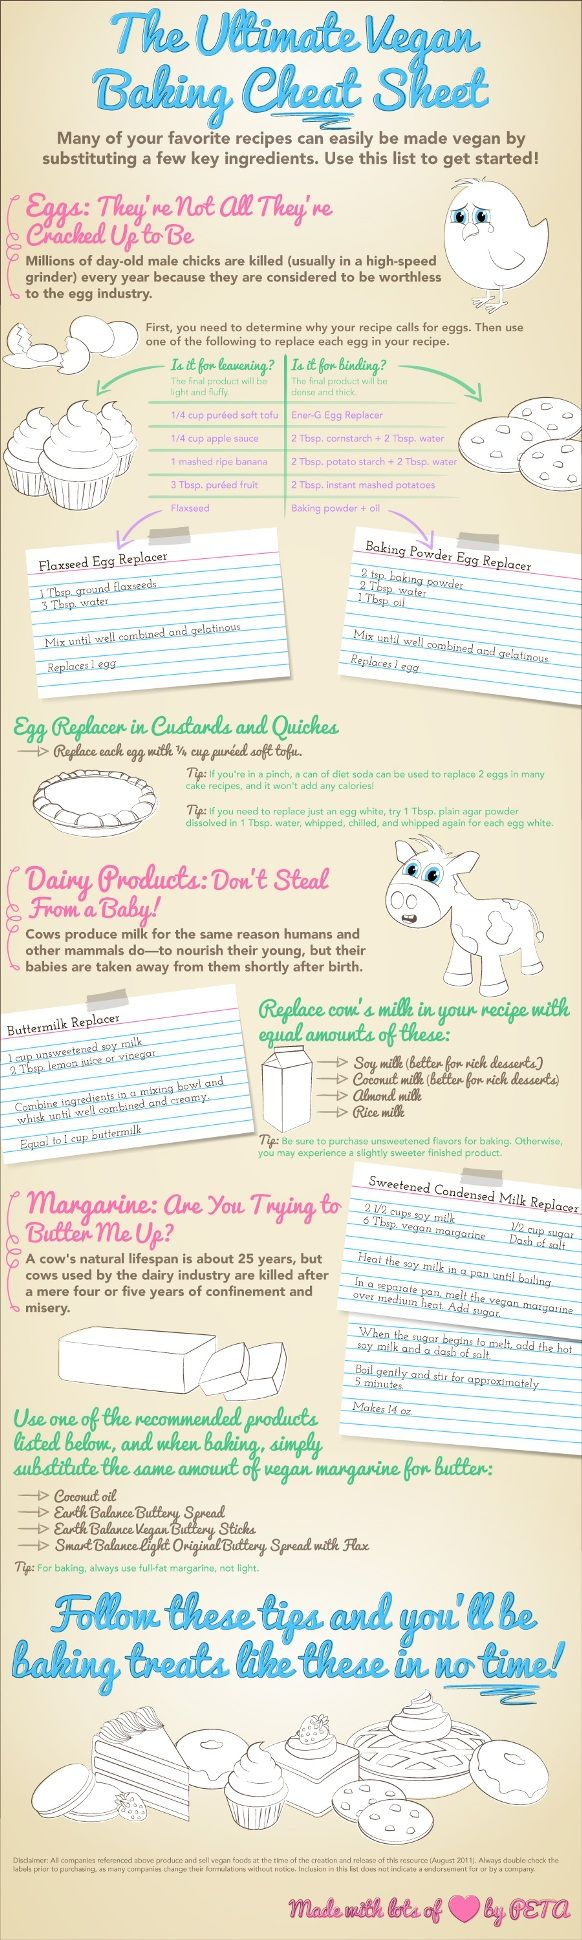 Vegan Baking Cheat Sheet - all the substitutions that can be made to make your baked goods vegan! thought of you - @Alison Brown :)